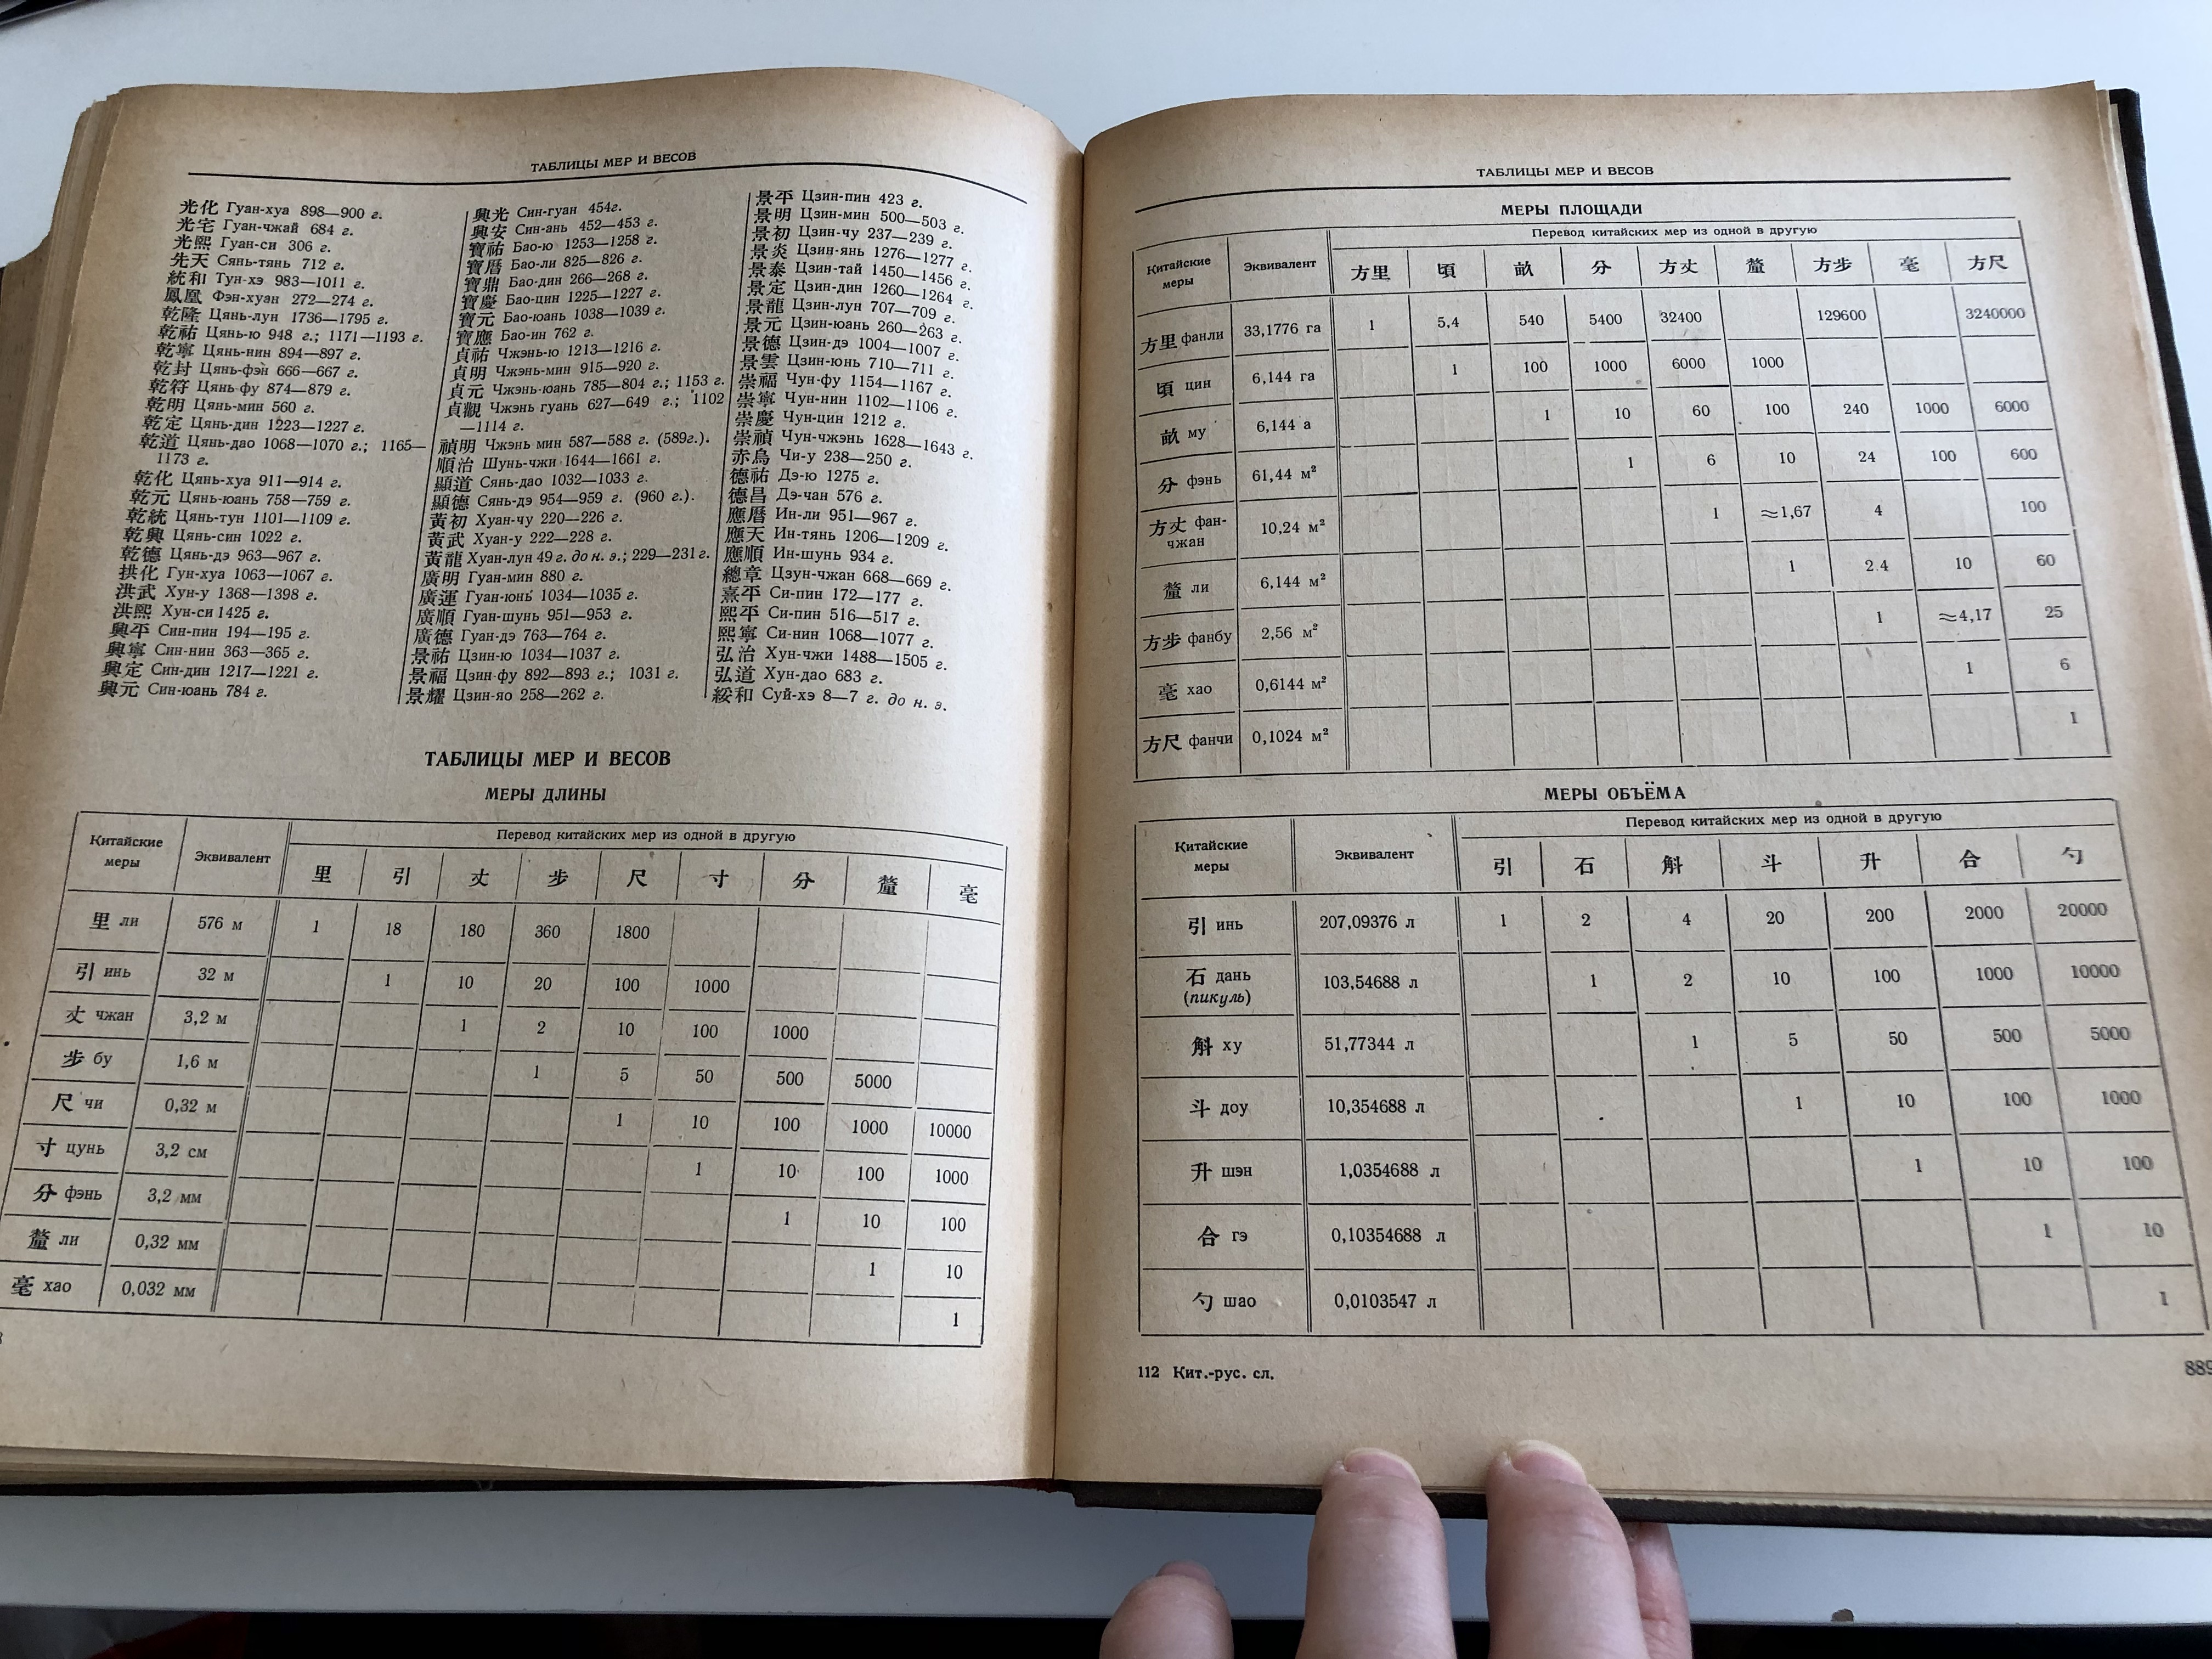 chinese-russian-dictionary-65.000-words-and-phrases-hardcover-1952-i.m-oshanin-21-.jpg